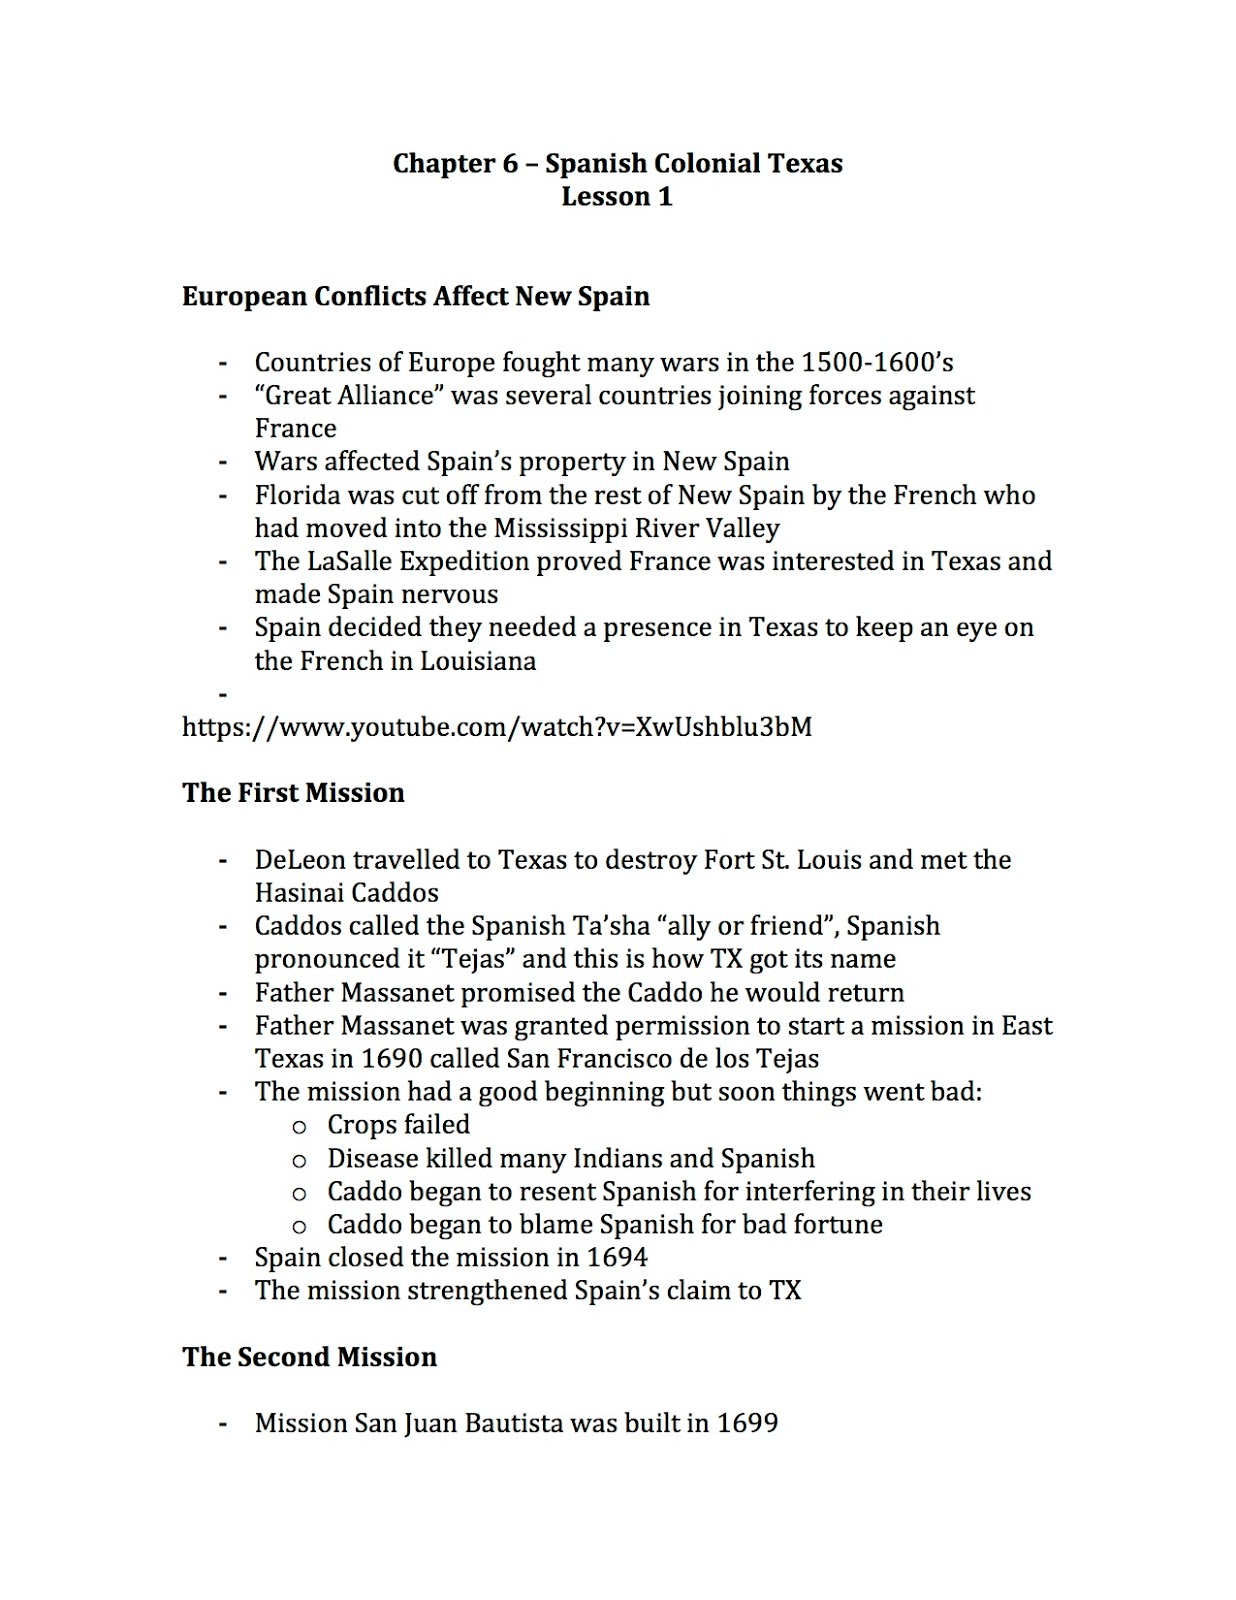 Ehms Texas History Chapter 6 Notes Mission Project And